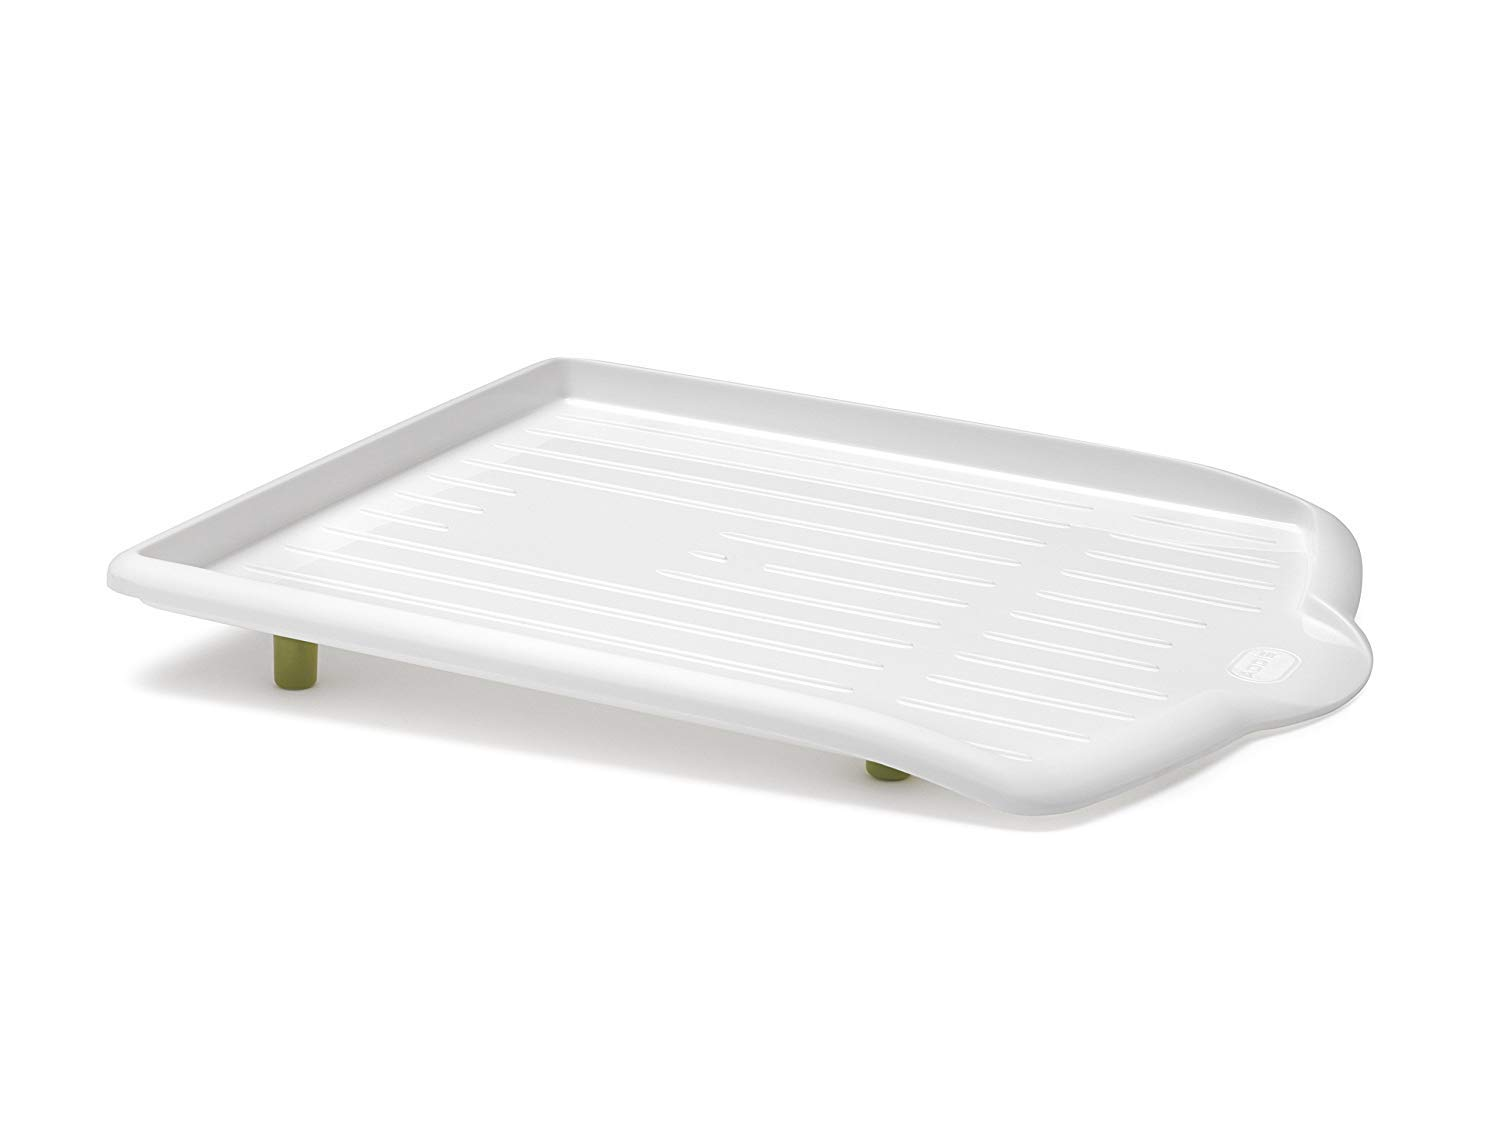 Addis Sink Side Drip Sloping Draining Tray with Soft Touch Feet, White/Green, 45 x 39 x 5 cm 9881